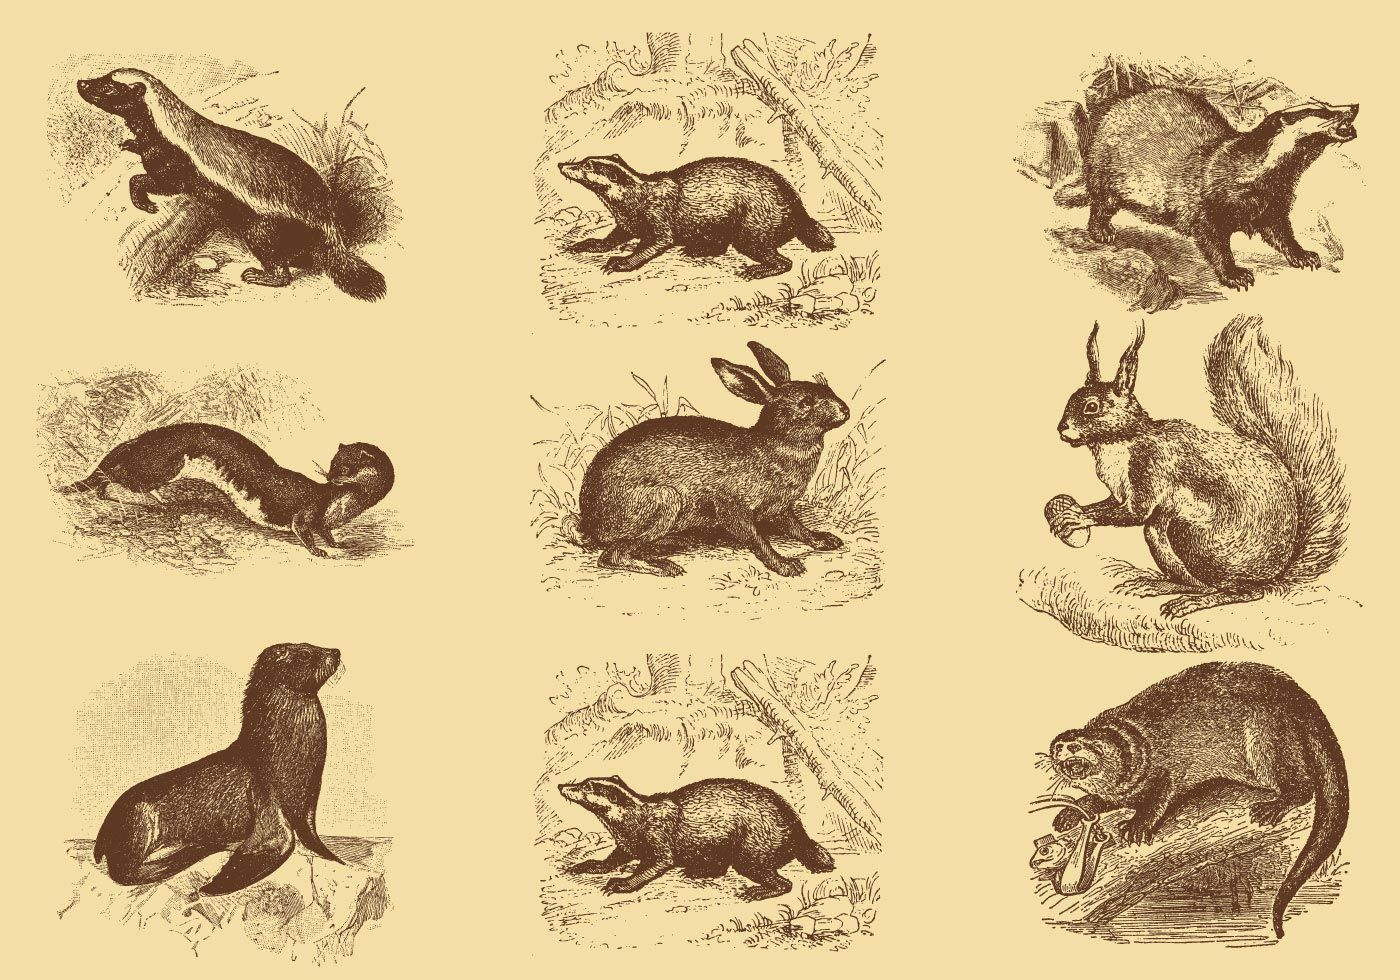 Line Drawing Vector Graphics : Old style drawing mammal vectors ilustrações antigas pinterest